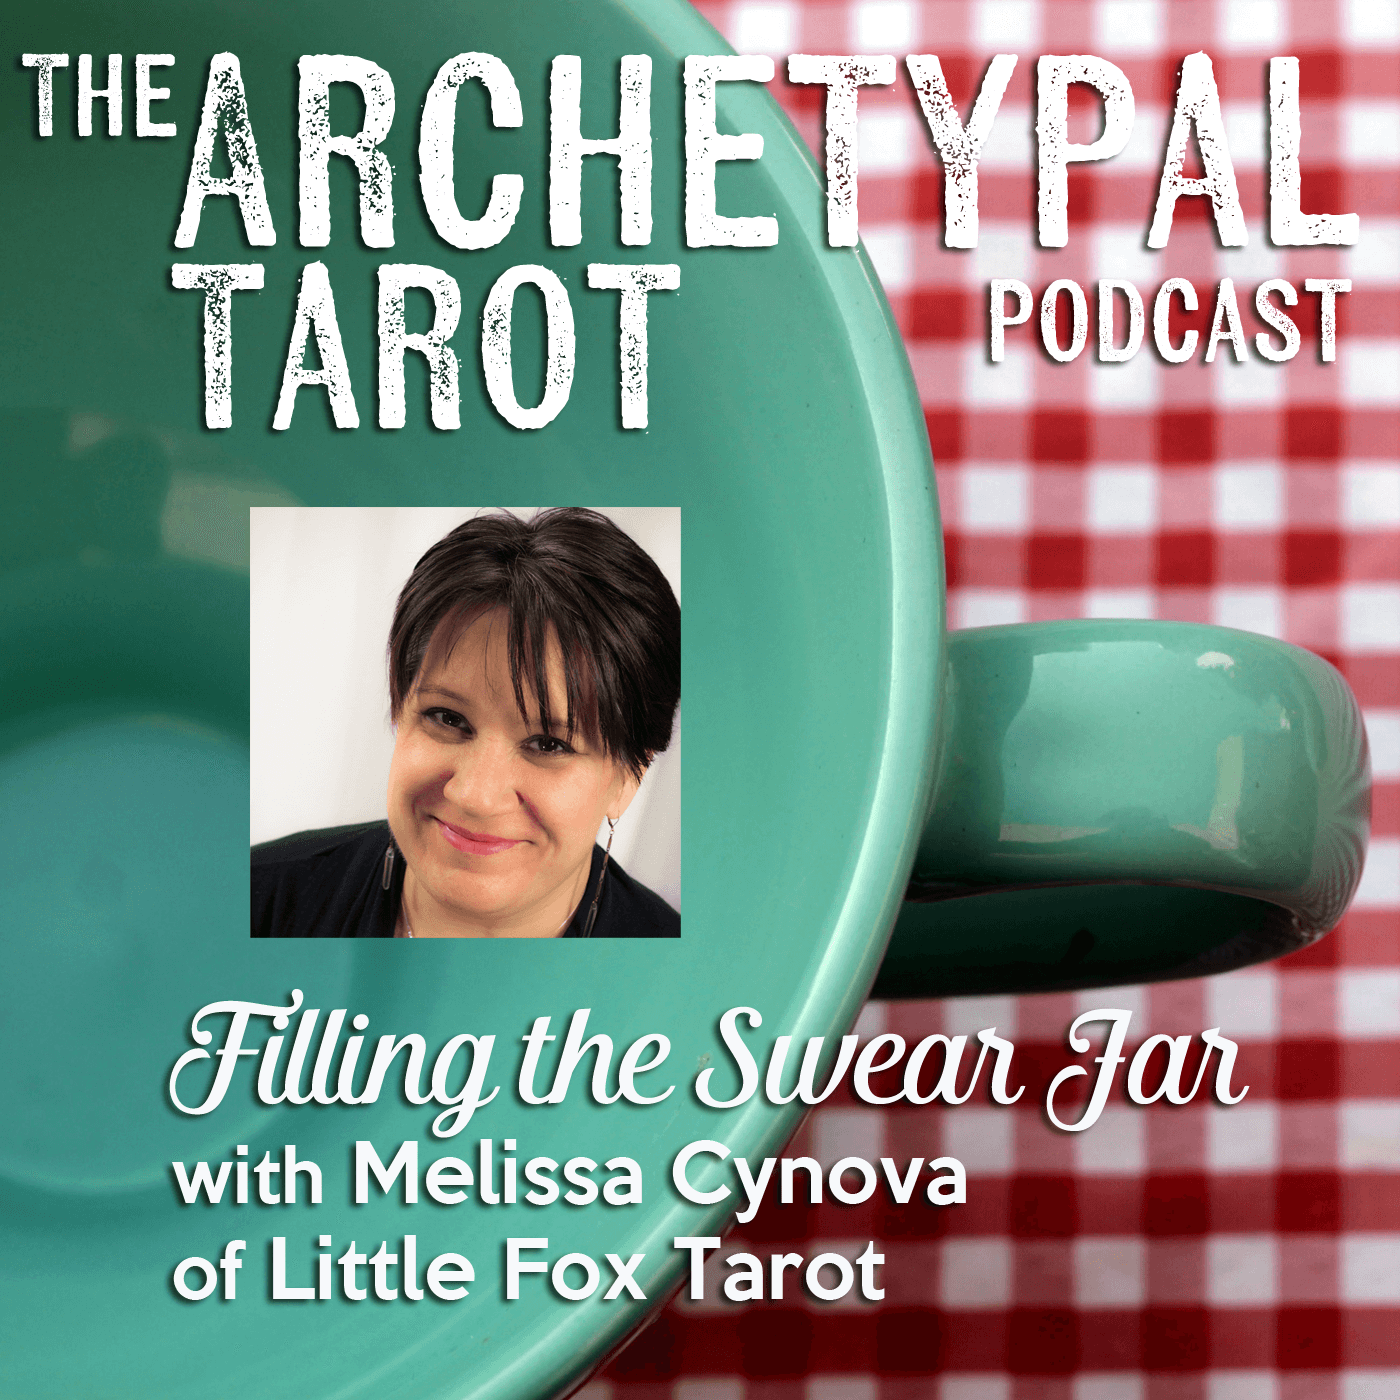 Filling the Swear Jar with Melissa Cynova of Little Fox Tarot